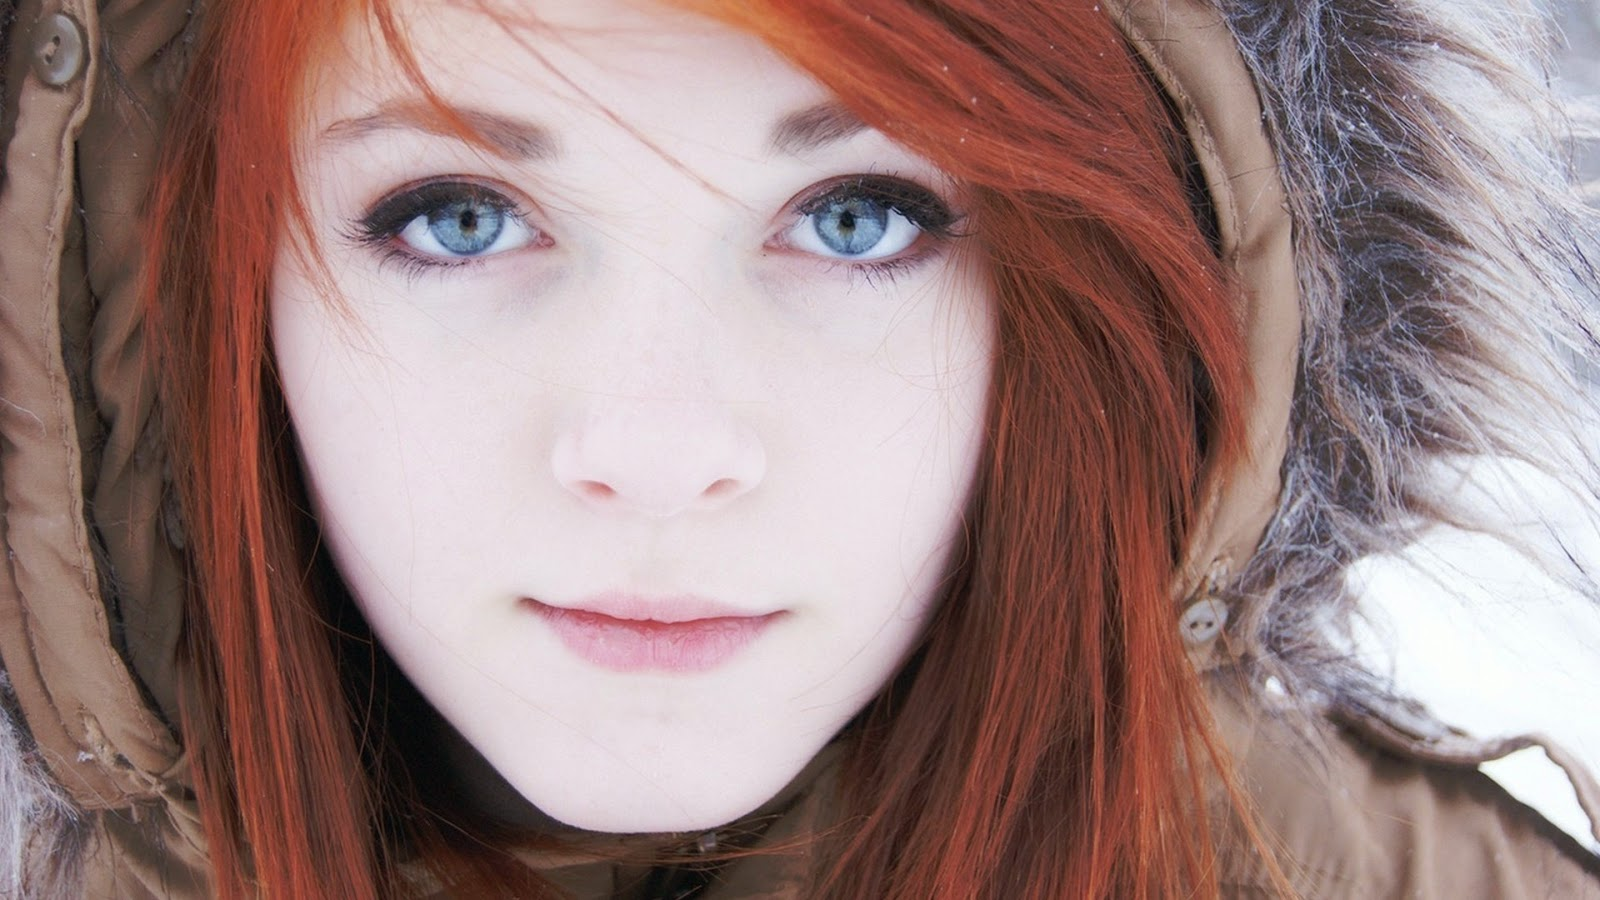 Excellent answer, girl most beautiful redhead teen